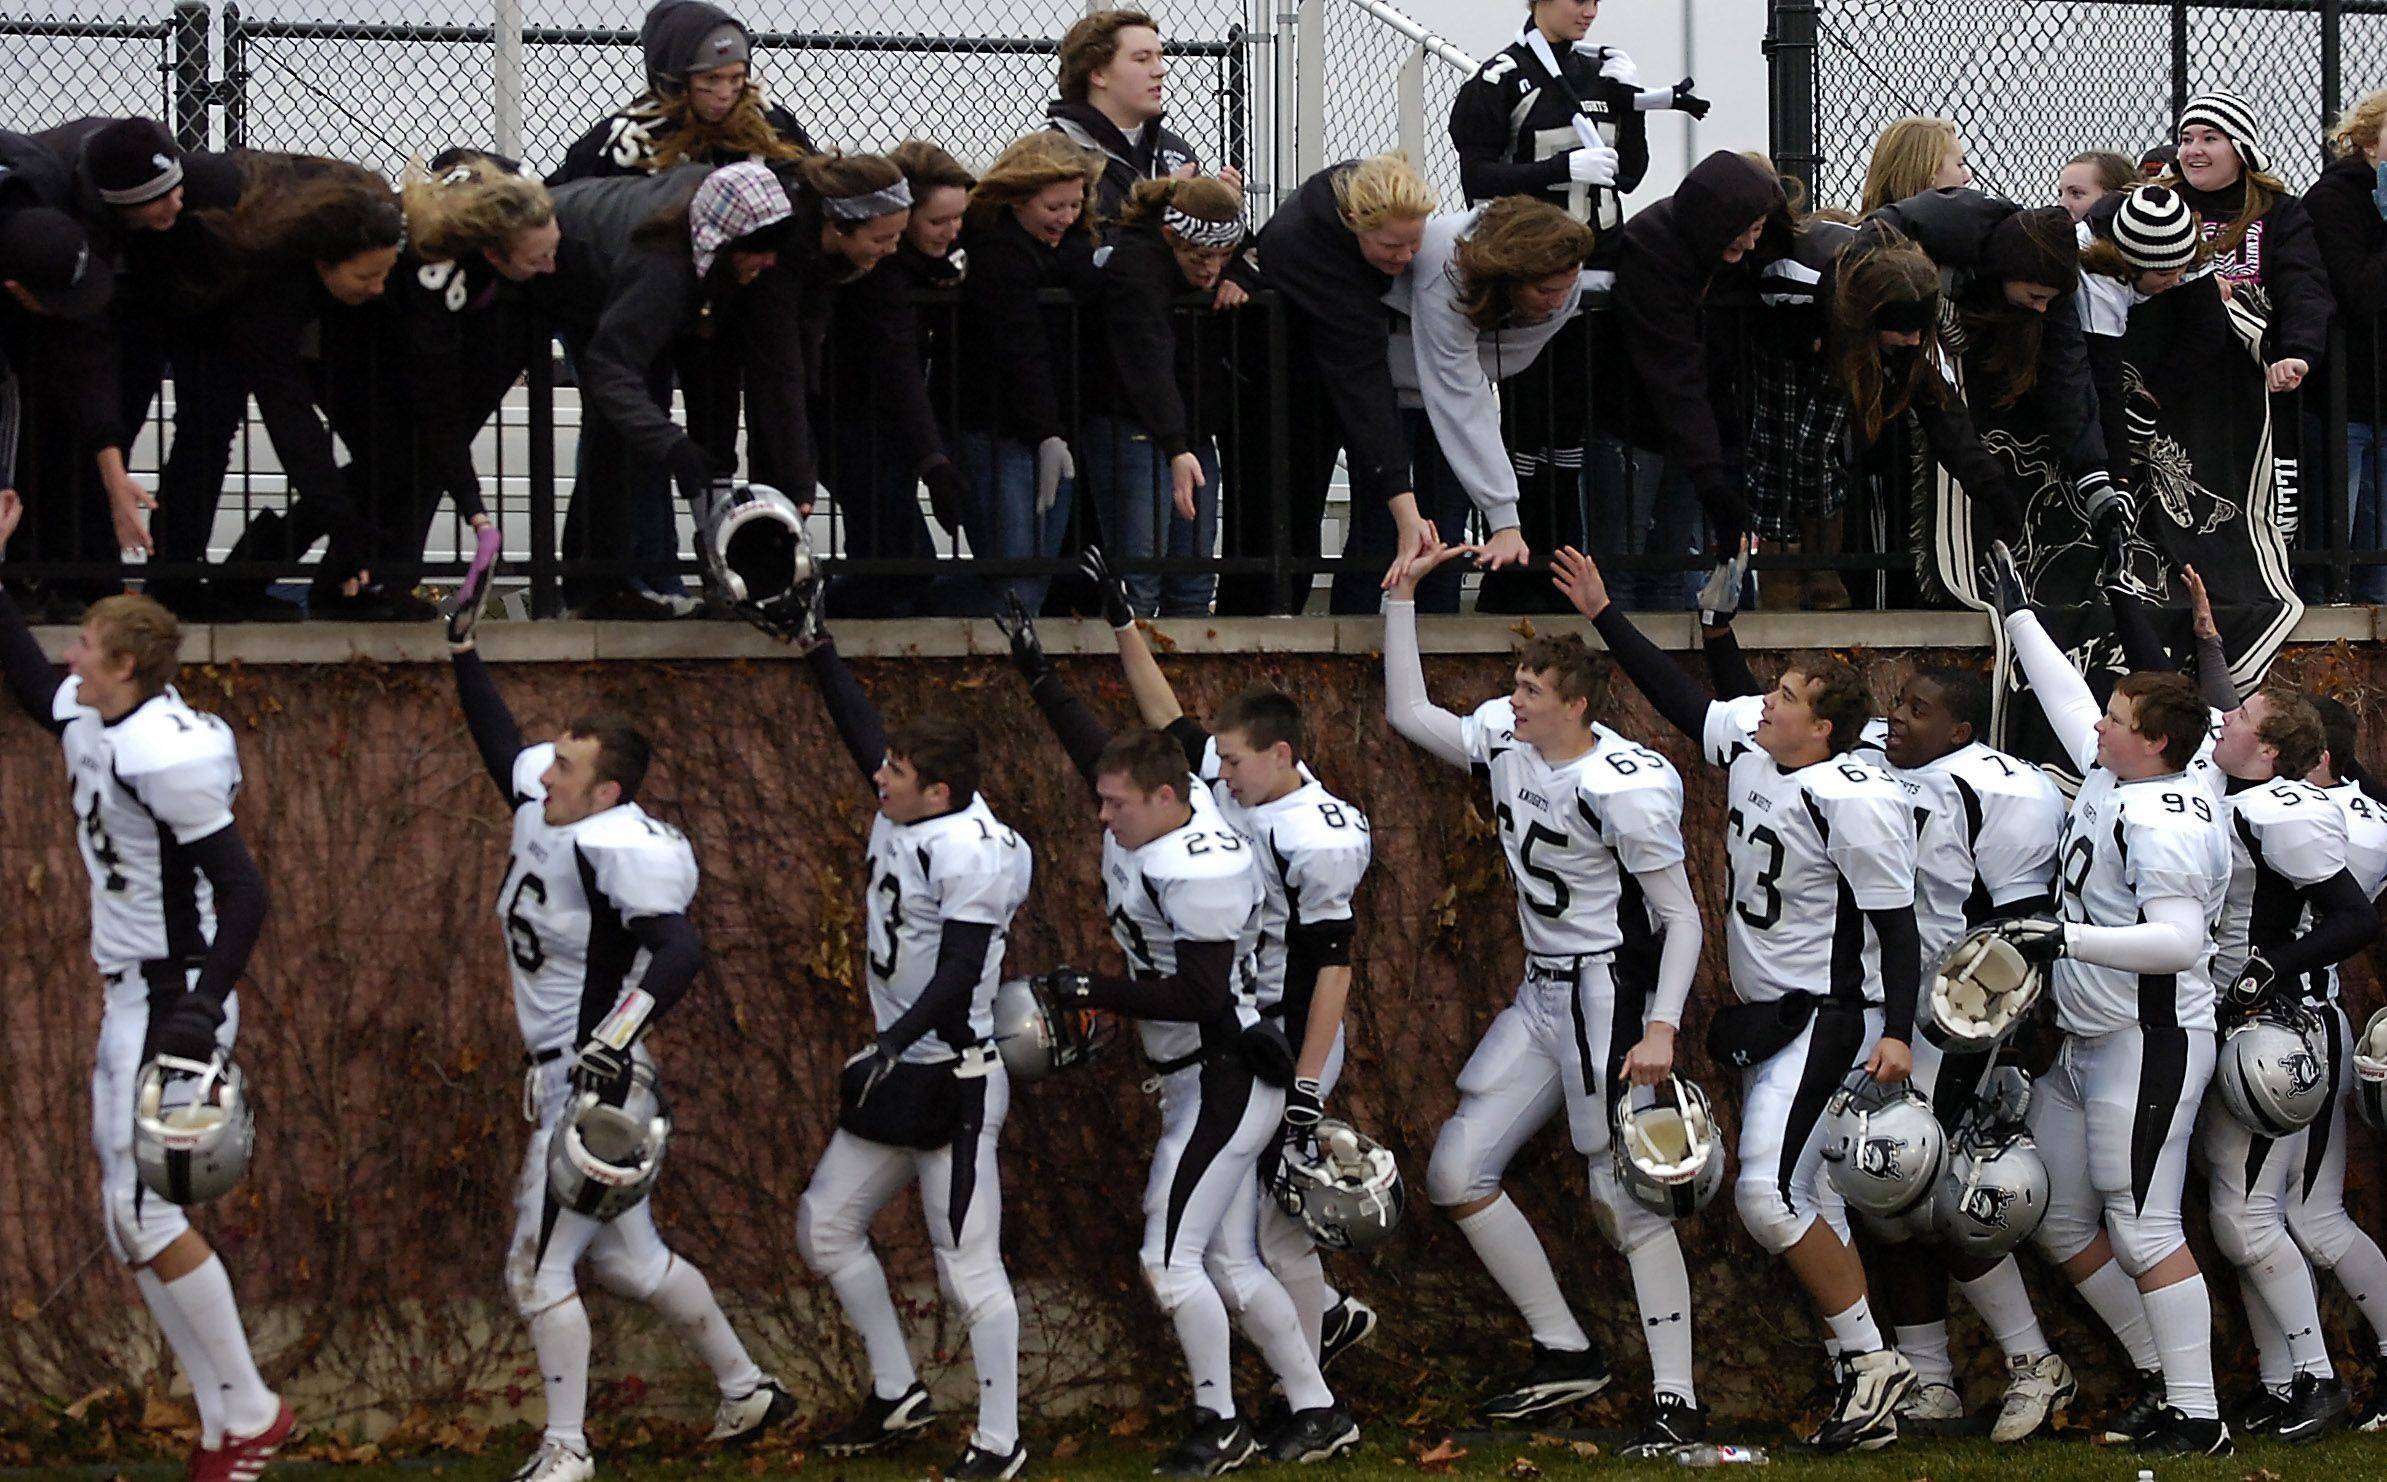 Kaneland celebrates with their fans at the end of the game after defeating Vernon Hill in the Class 5A quarter finals Saturday.